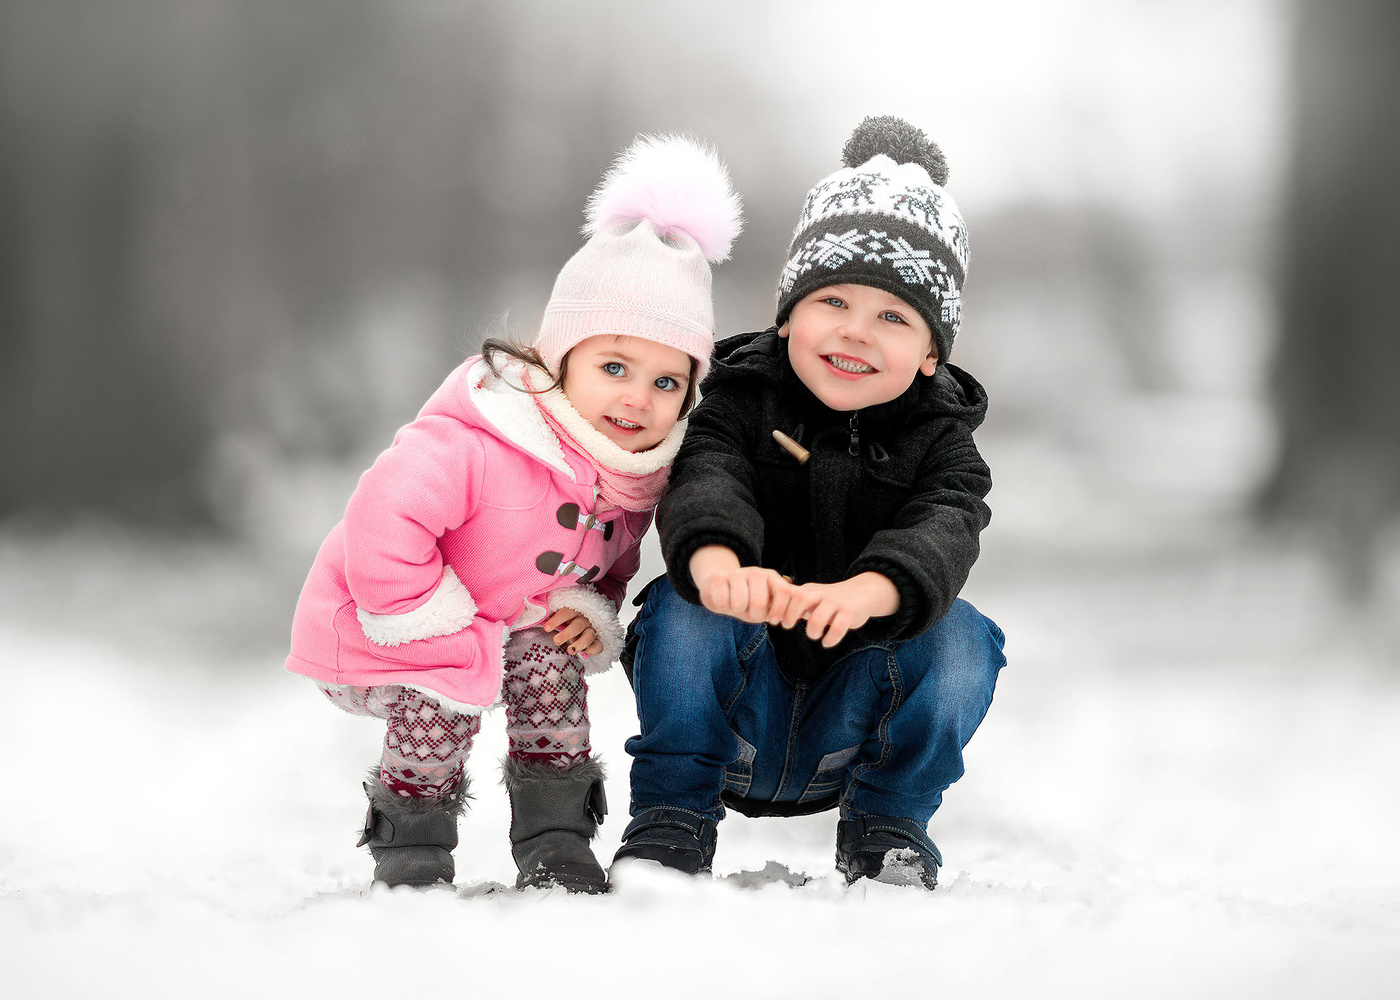 Winter Brother & Sister by Daniel Venter